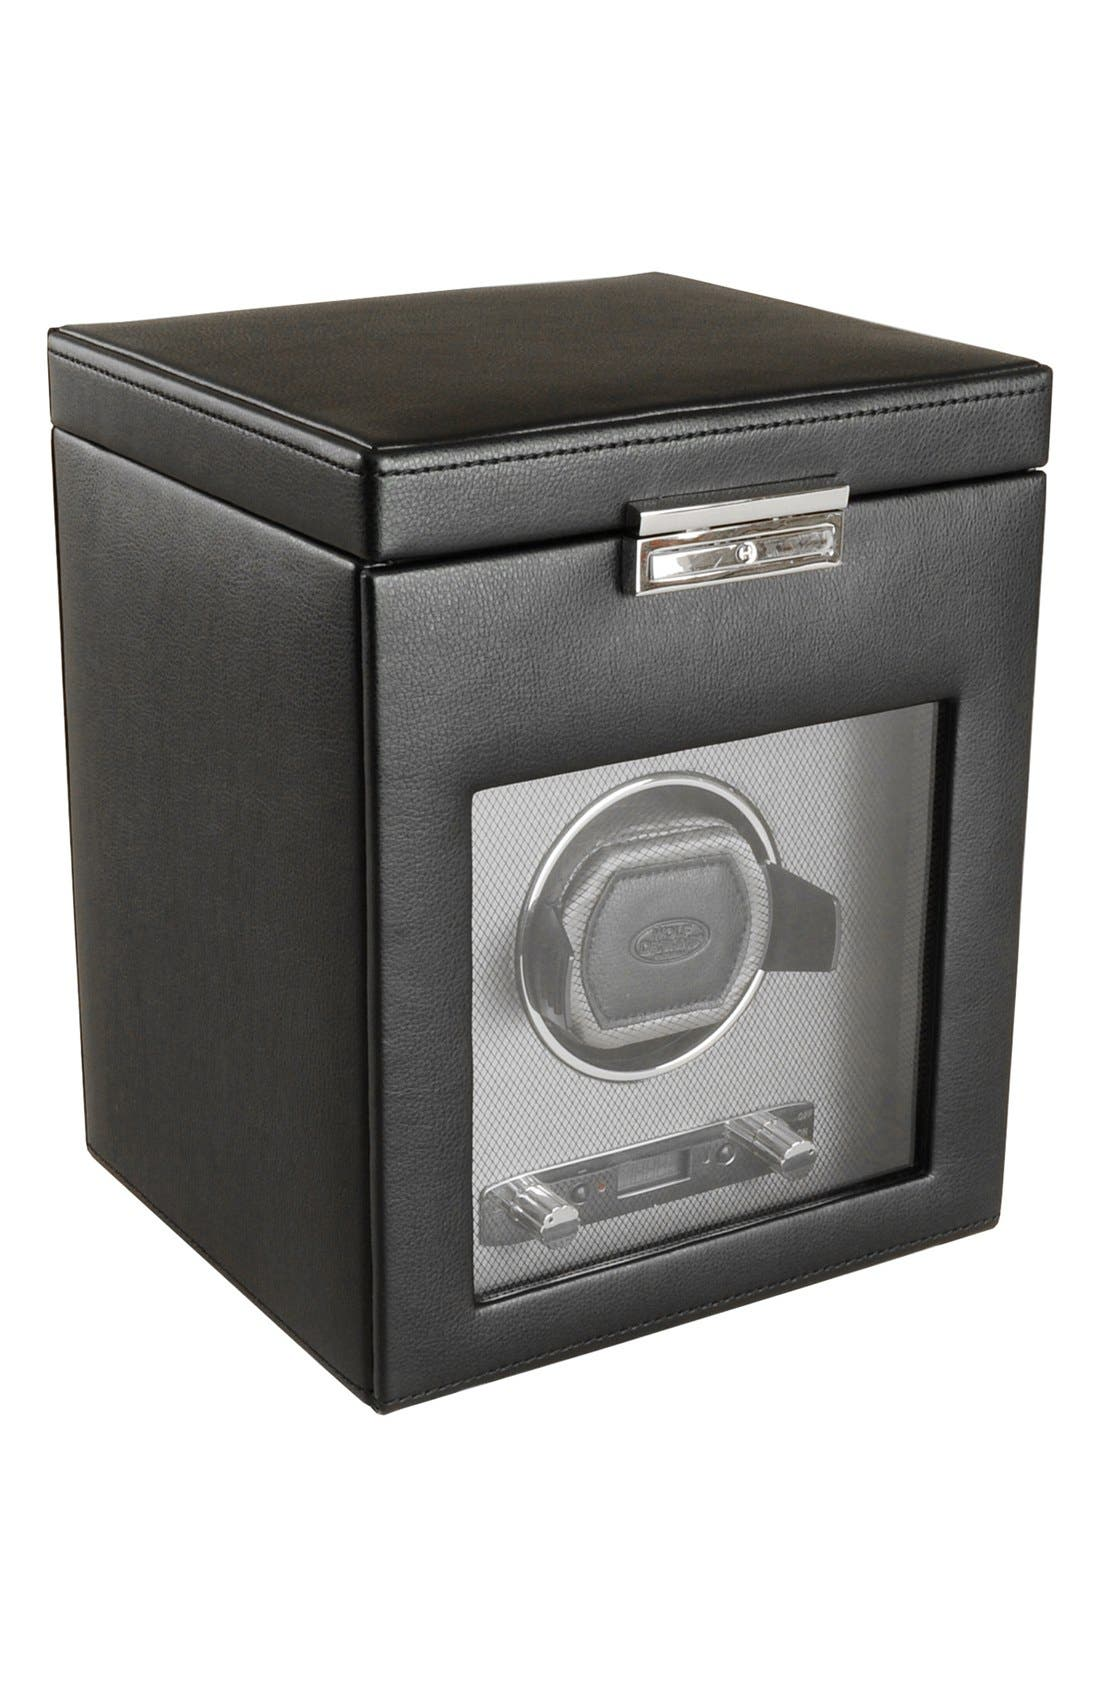 Viceroy Watch Winder & Storage Space,                             Main thumbnail 1, color,                             BLACK